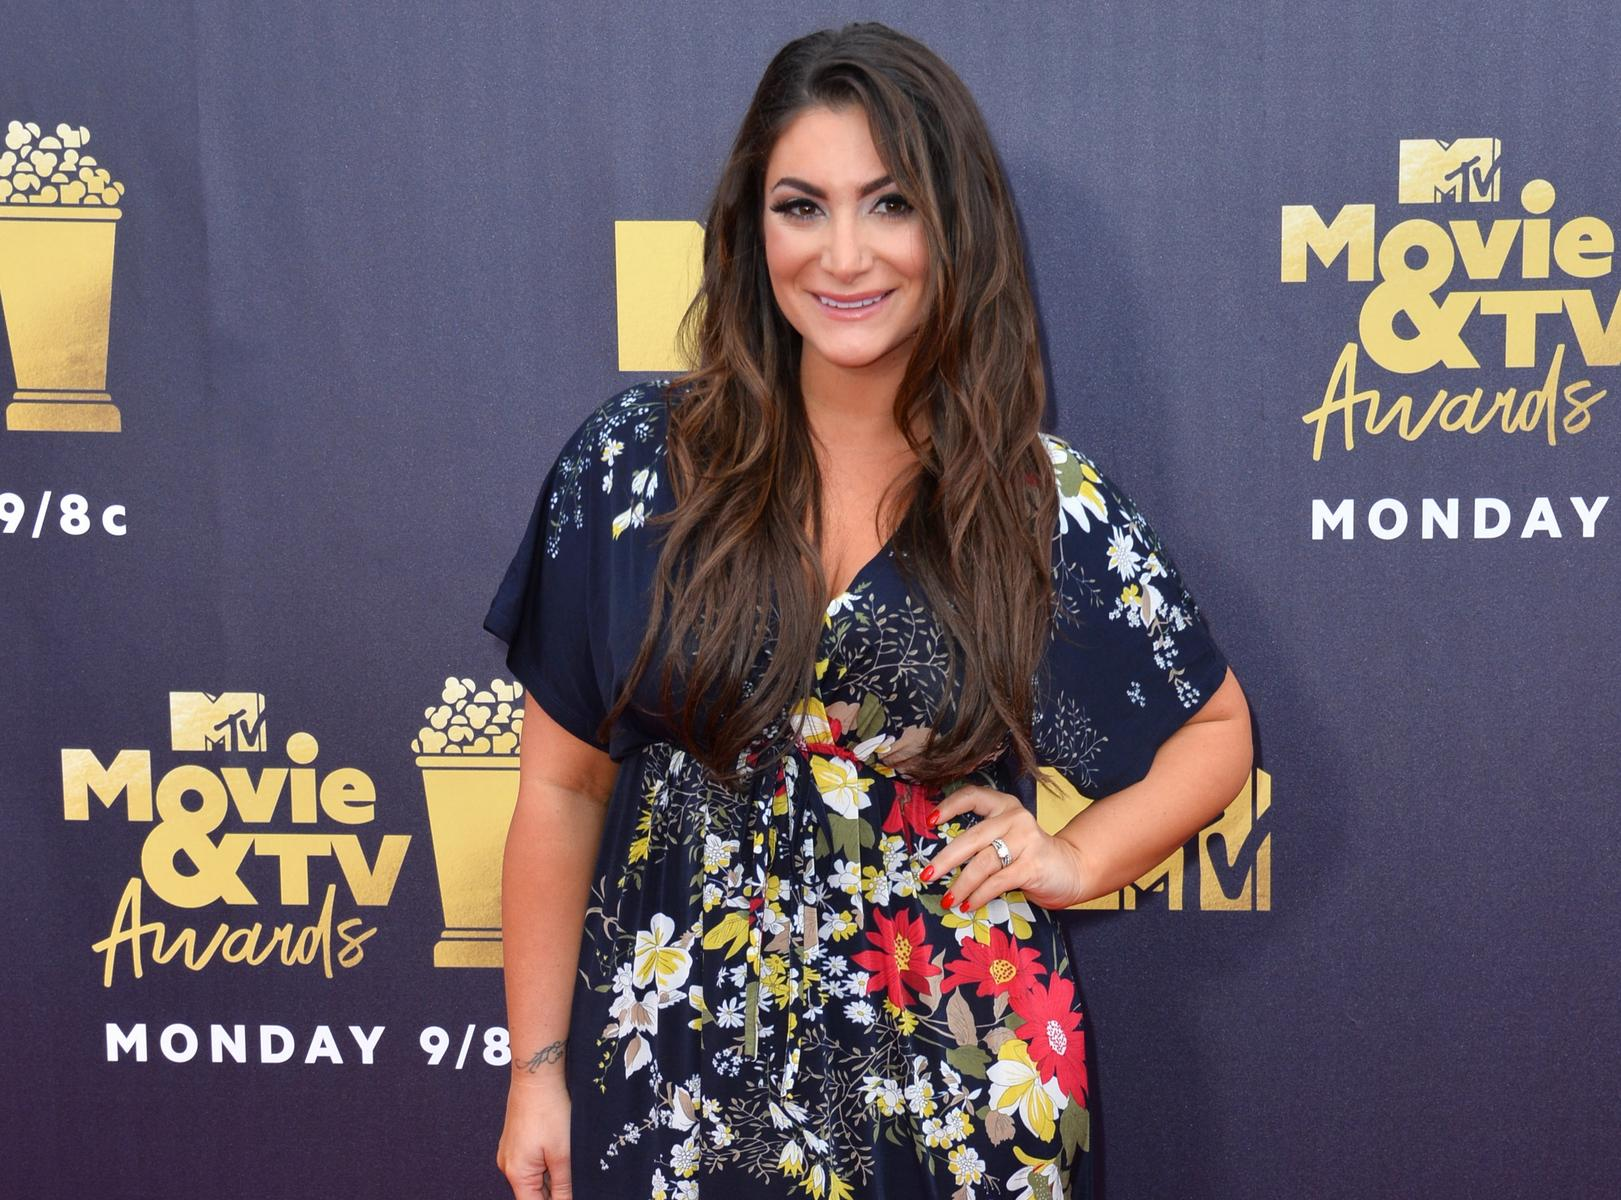 Jersey Shore Deena Cortese MTV Movie Awards Carpet